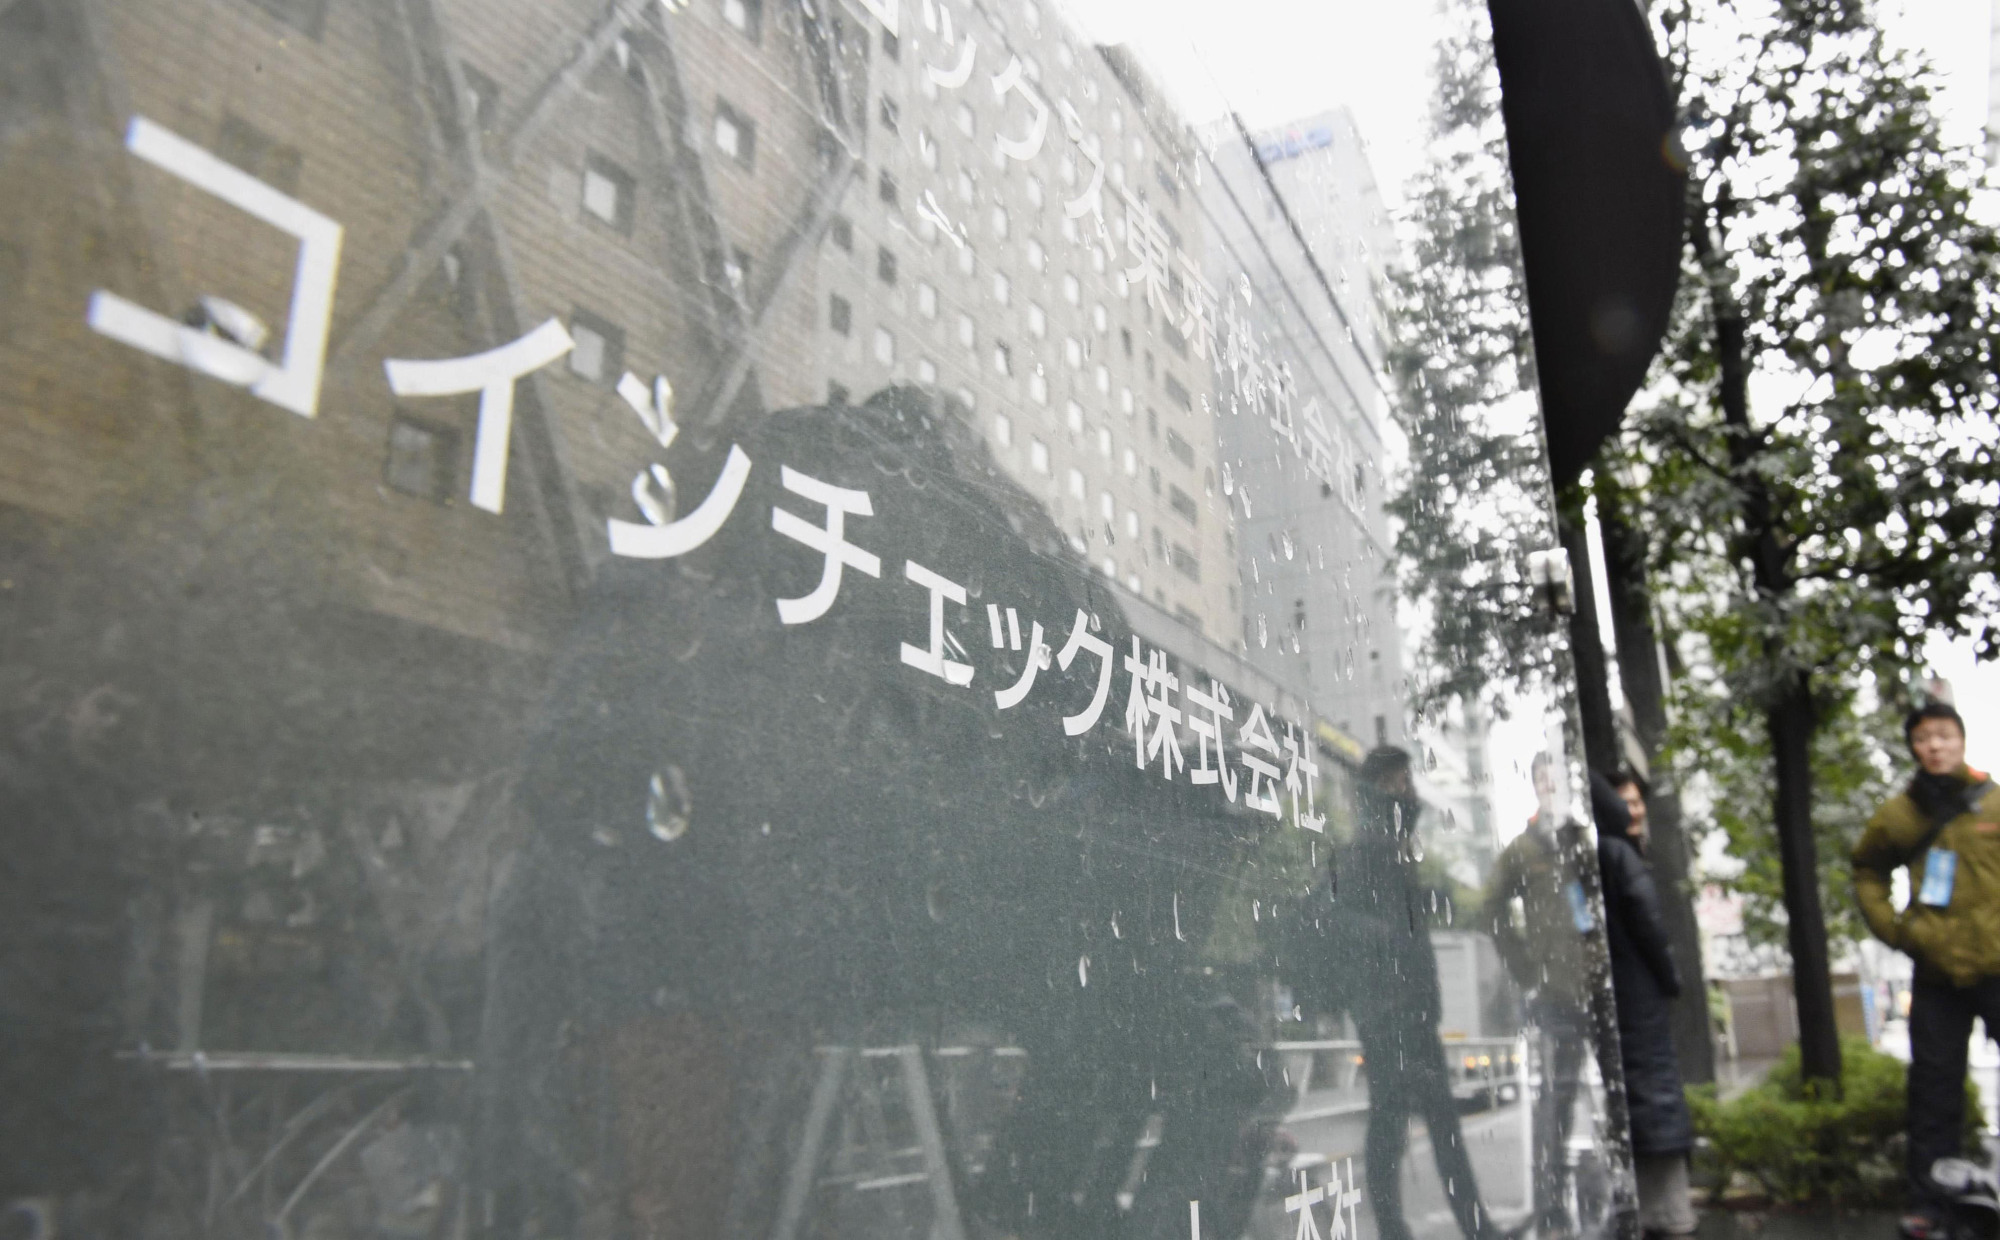 A signboard shows the name of Coincheck Inc. on Feb. 2. Police have questioned a Japanese man in connection with last month